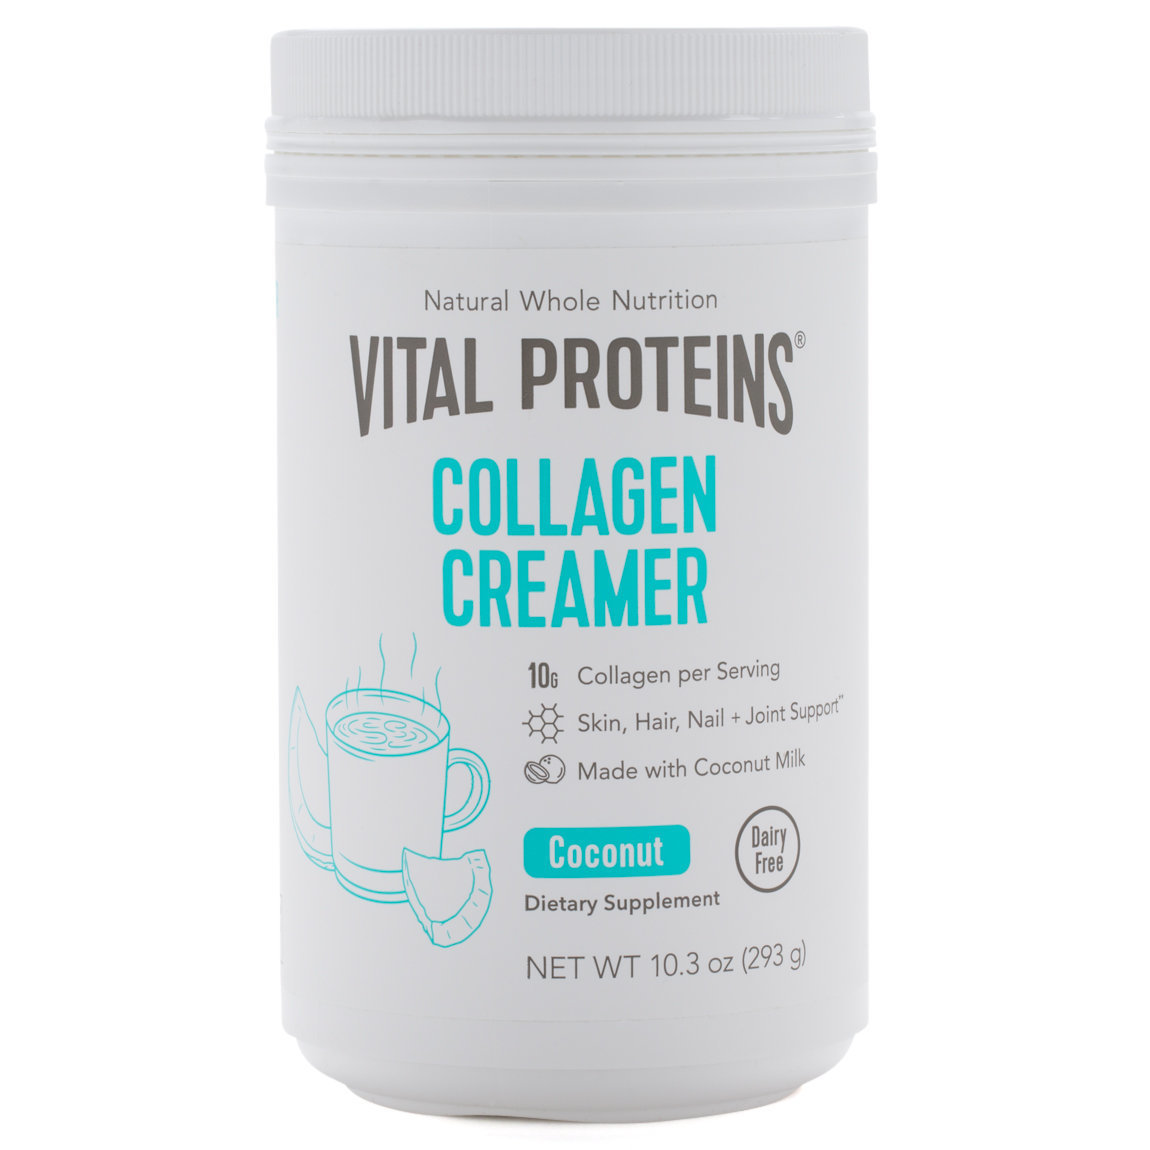 Vital Proteins Collagen Creamer - Coconut 10.3 oz product swatch.